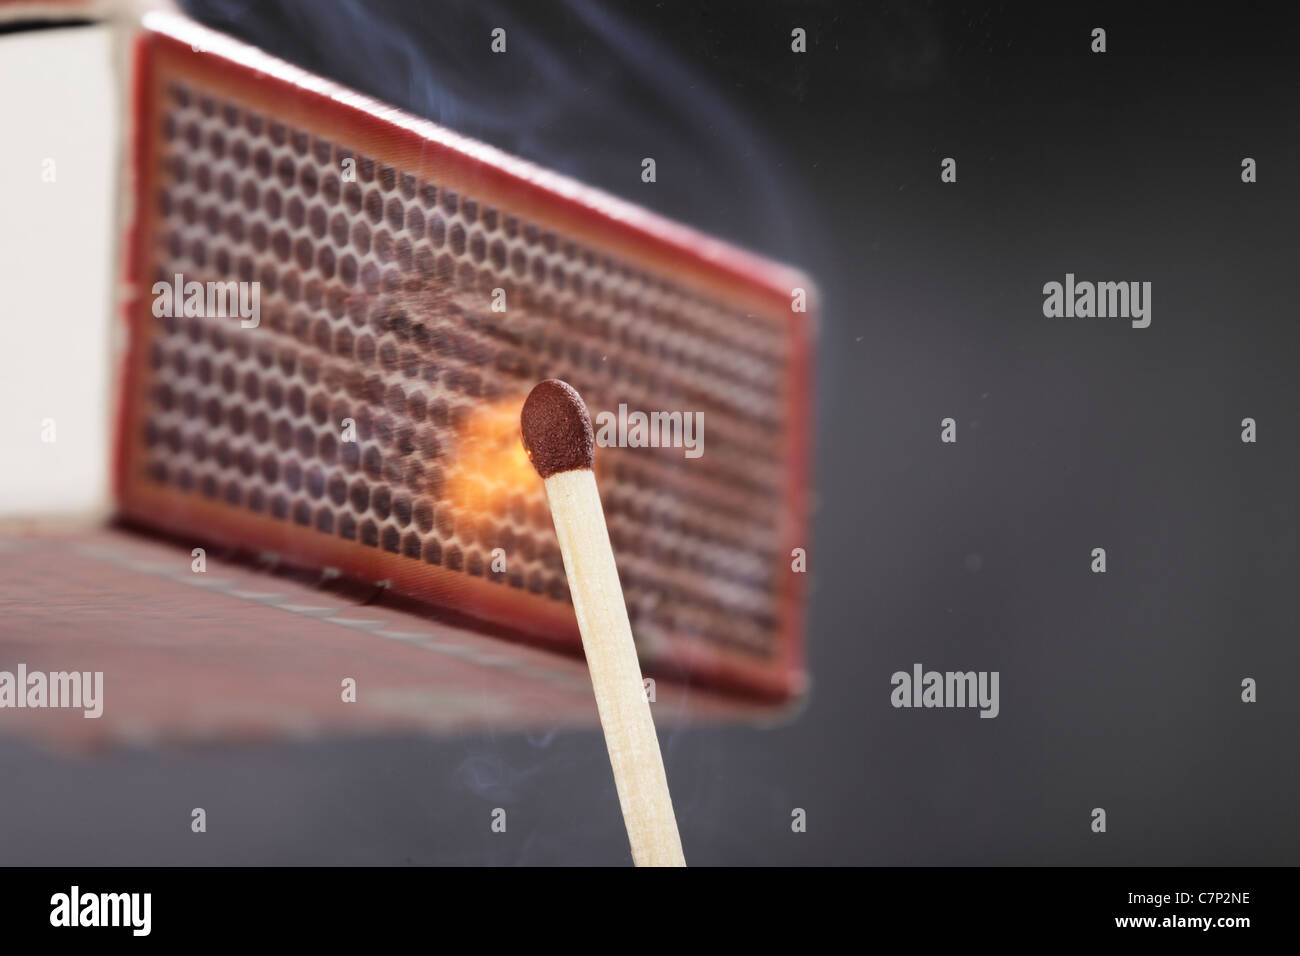 A Match ignited by rubbing the match head against a match box. - Stock Image